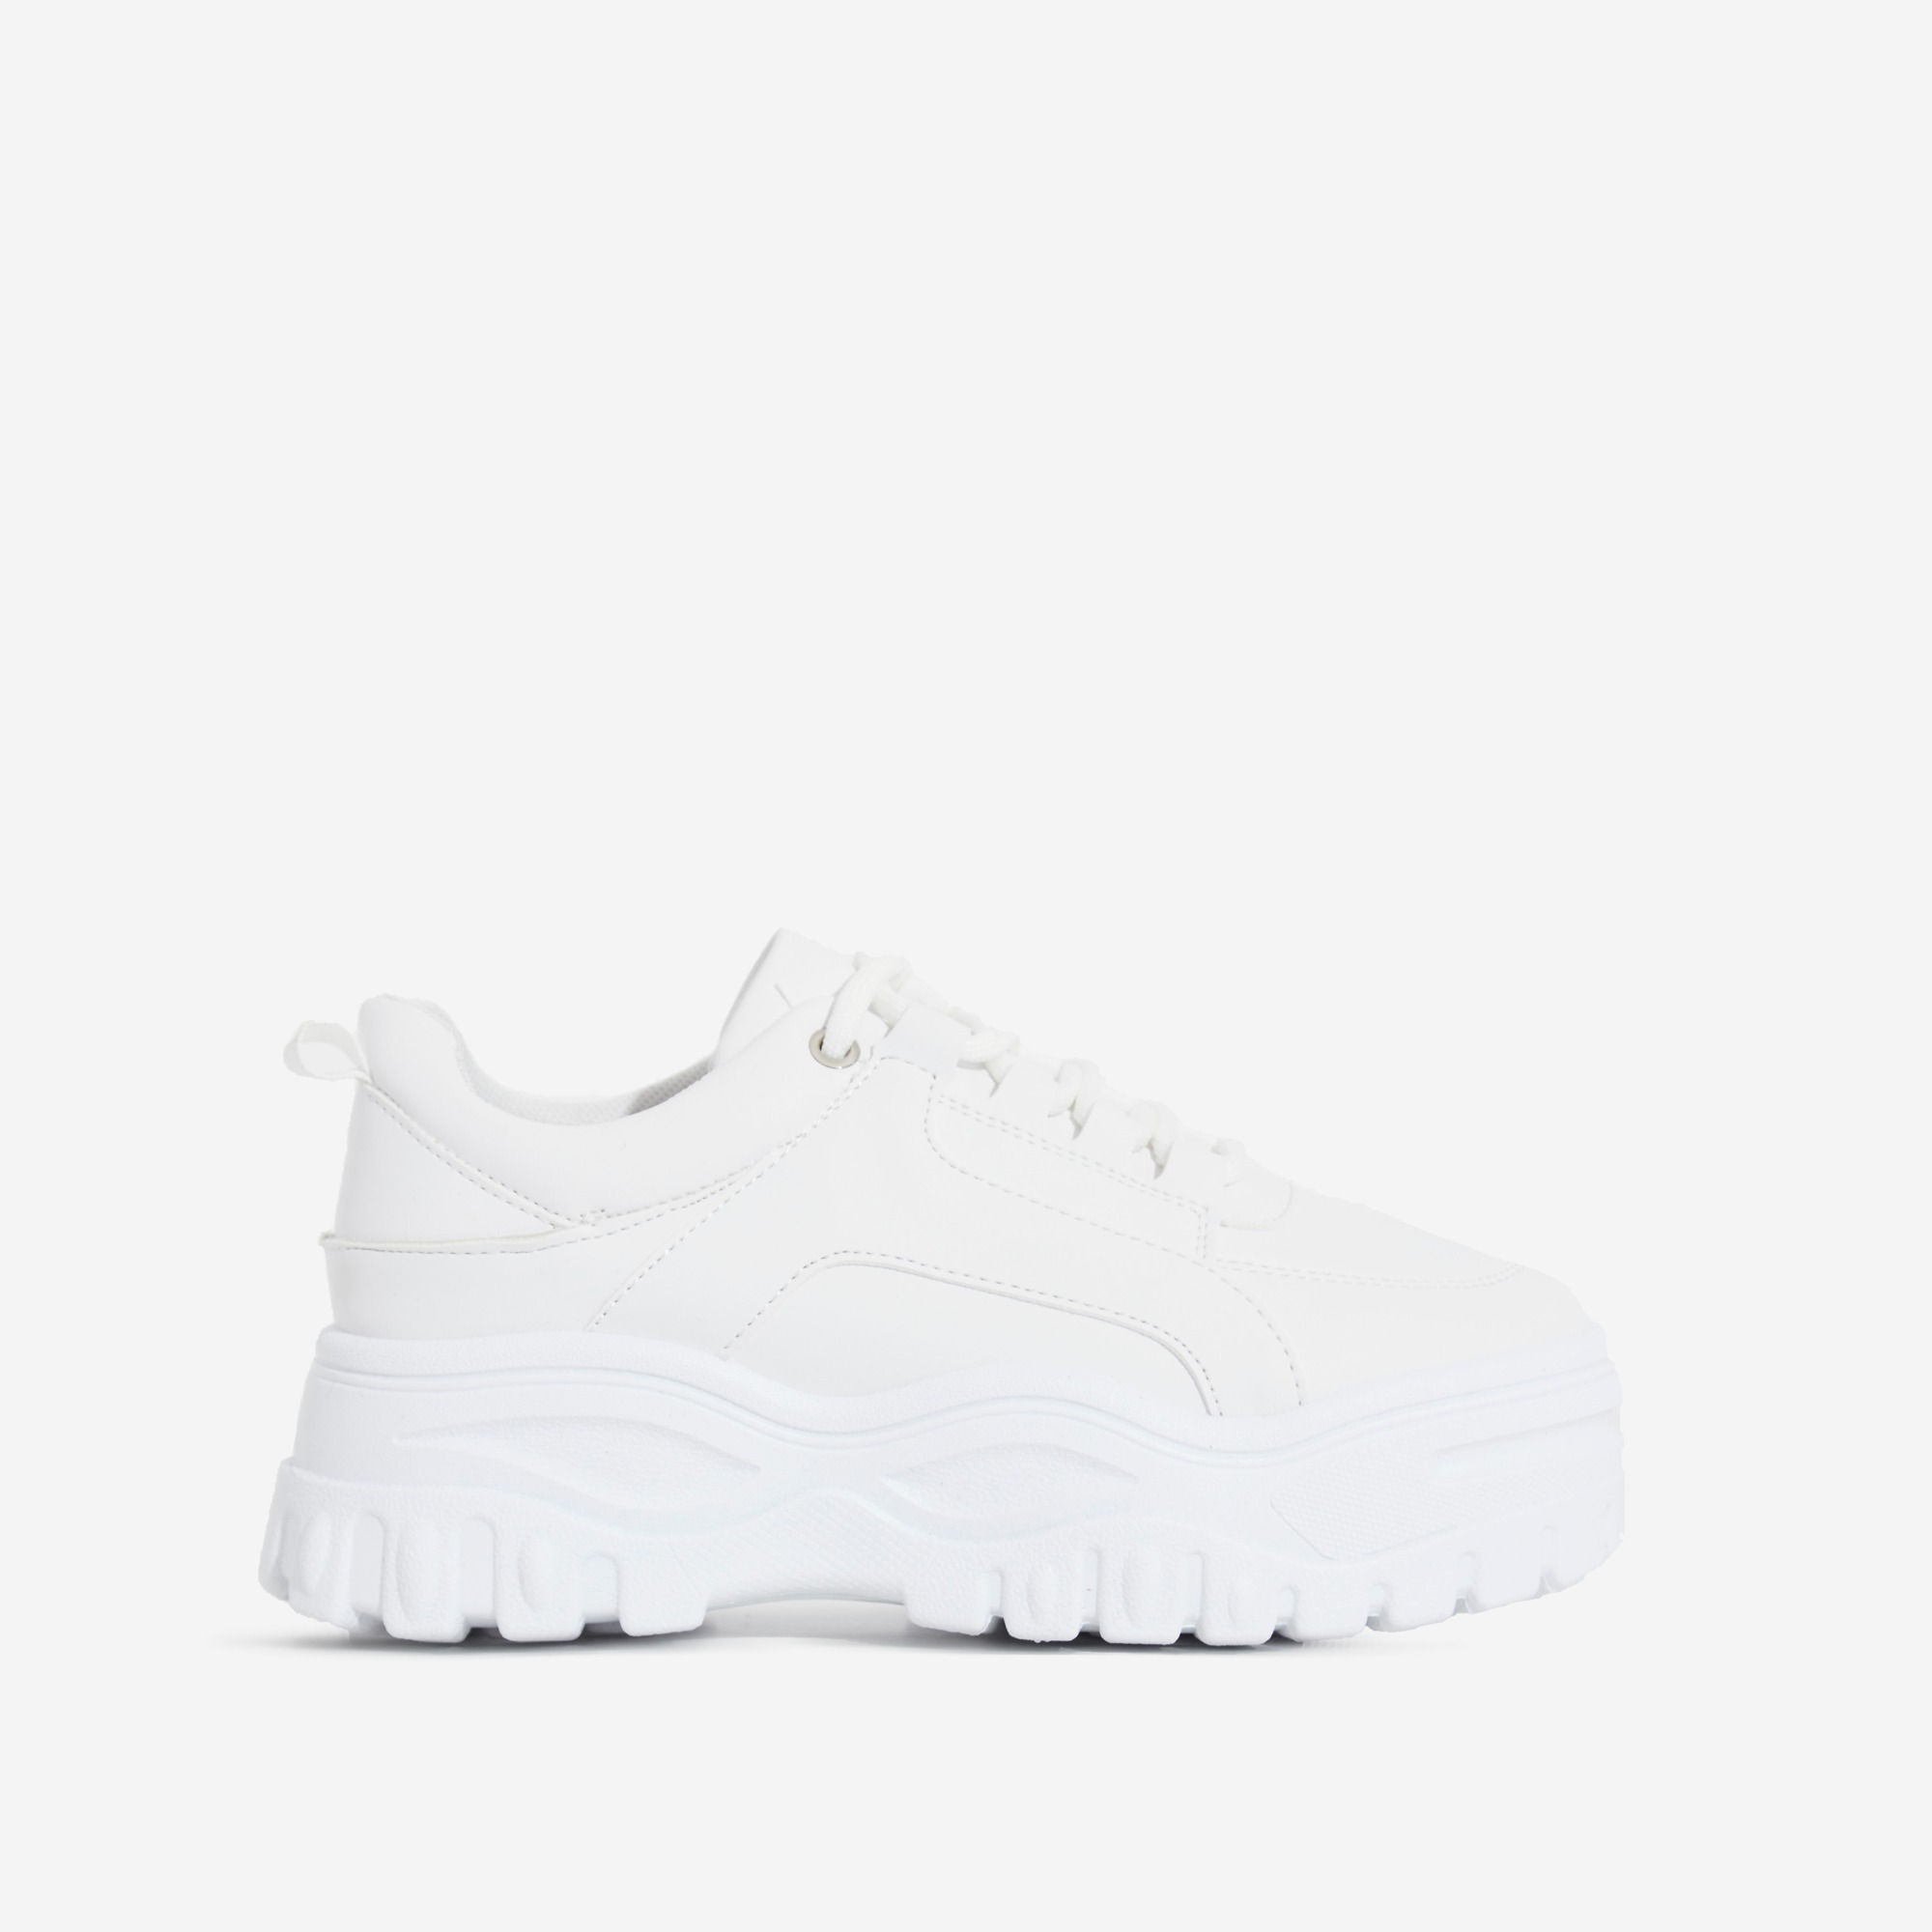 Tye Chunky Sole Trainer In White